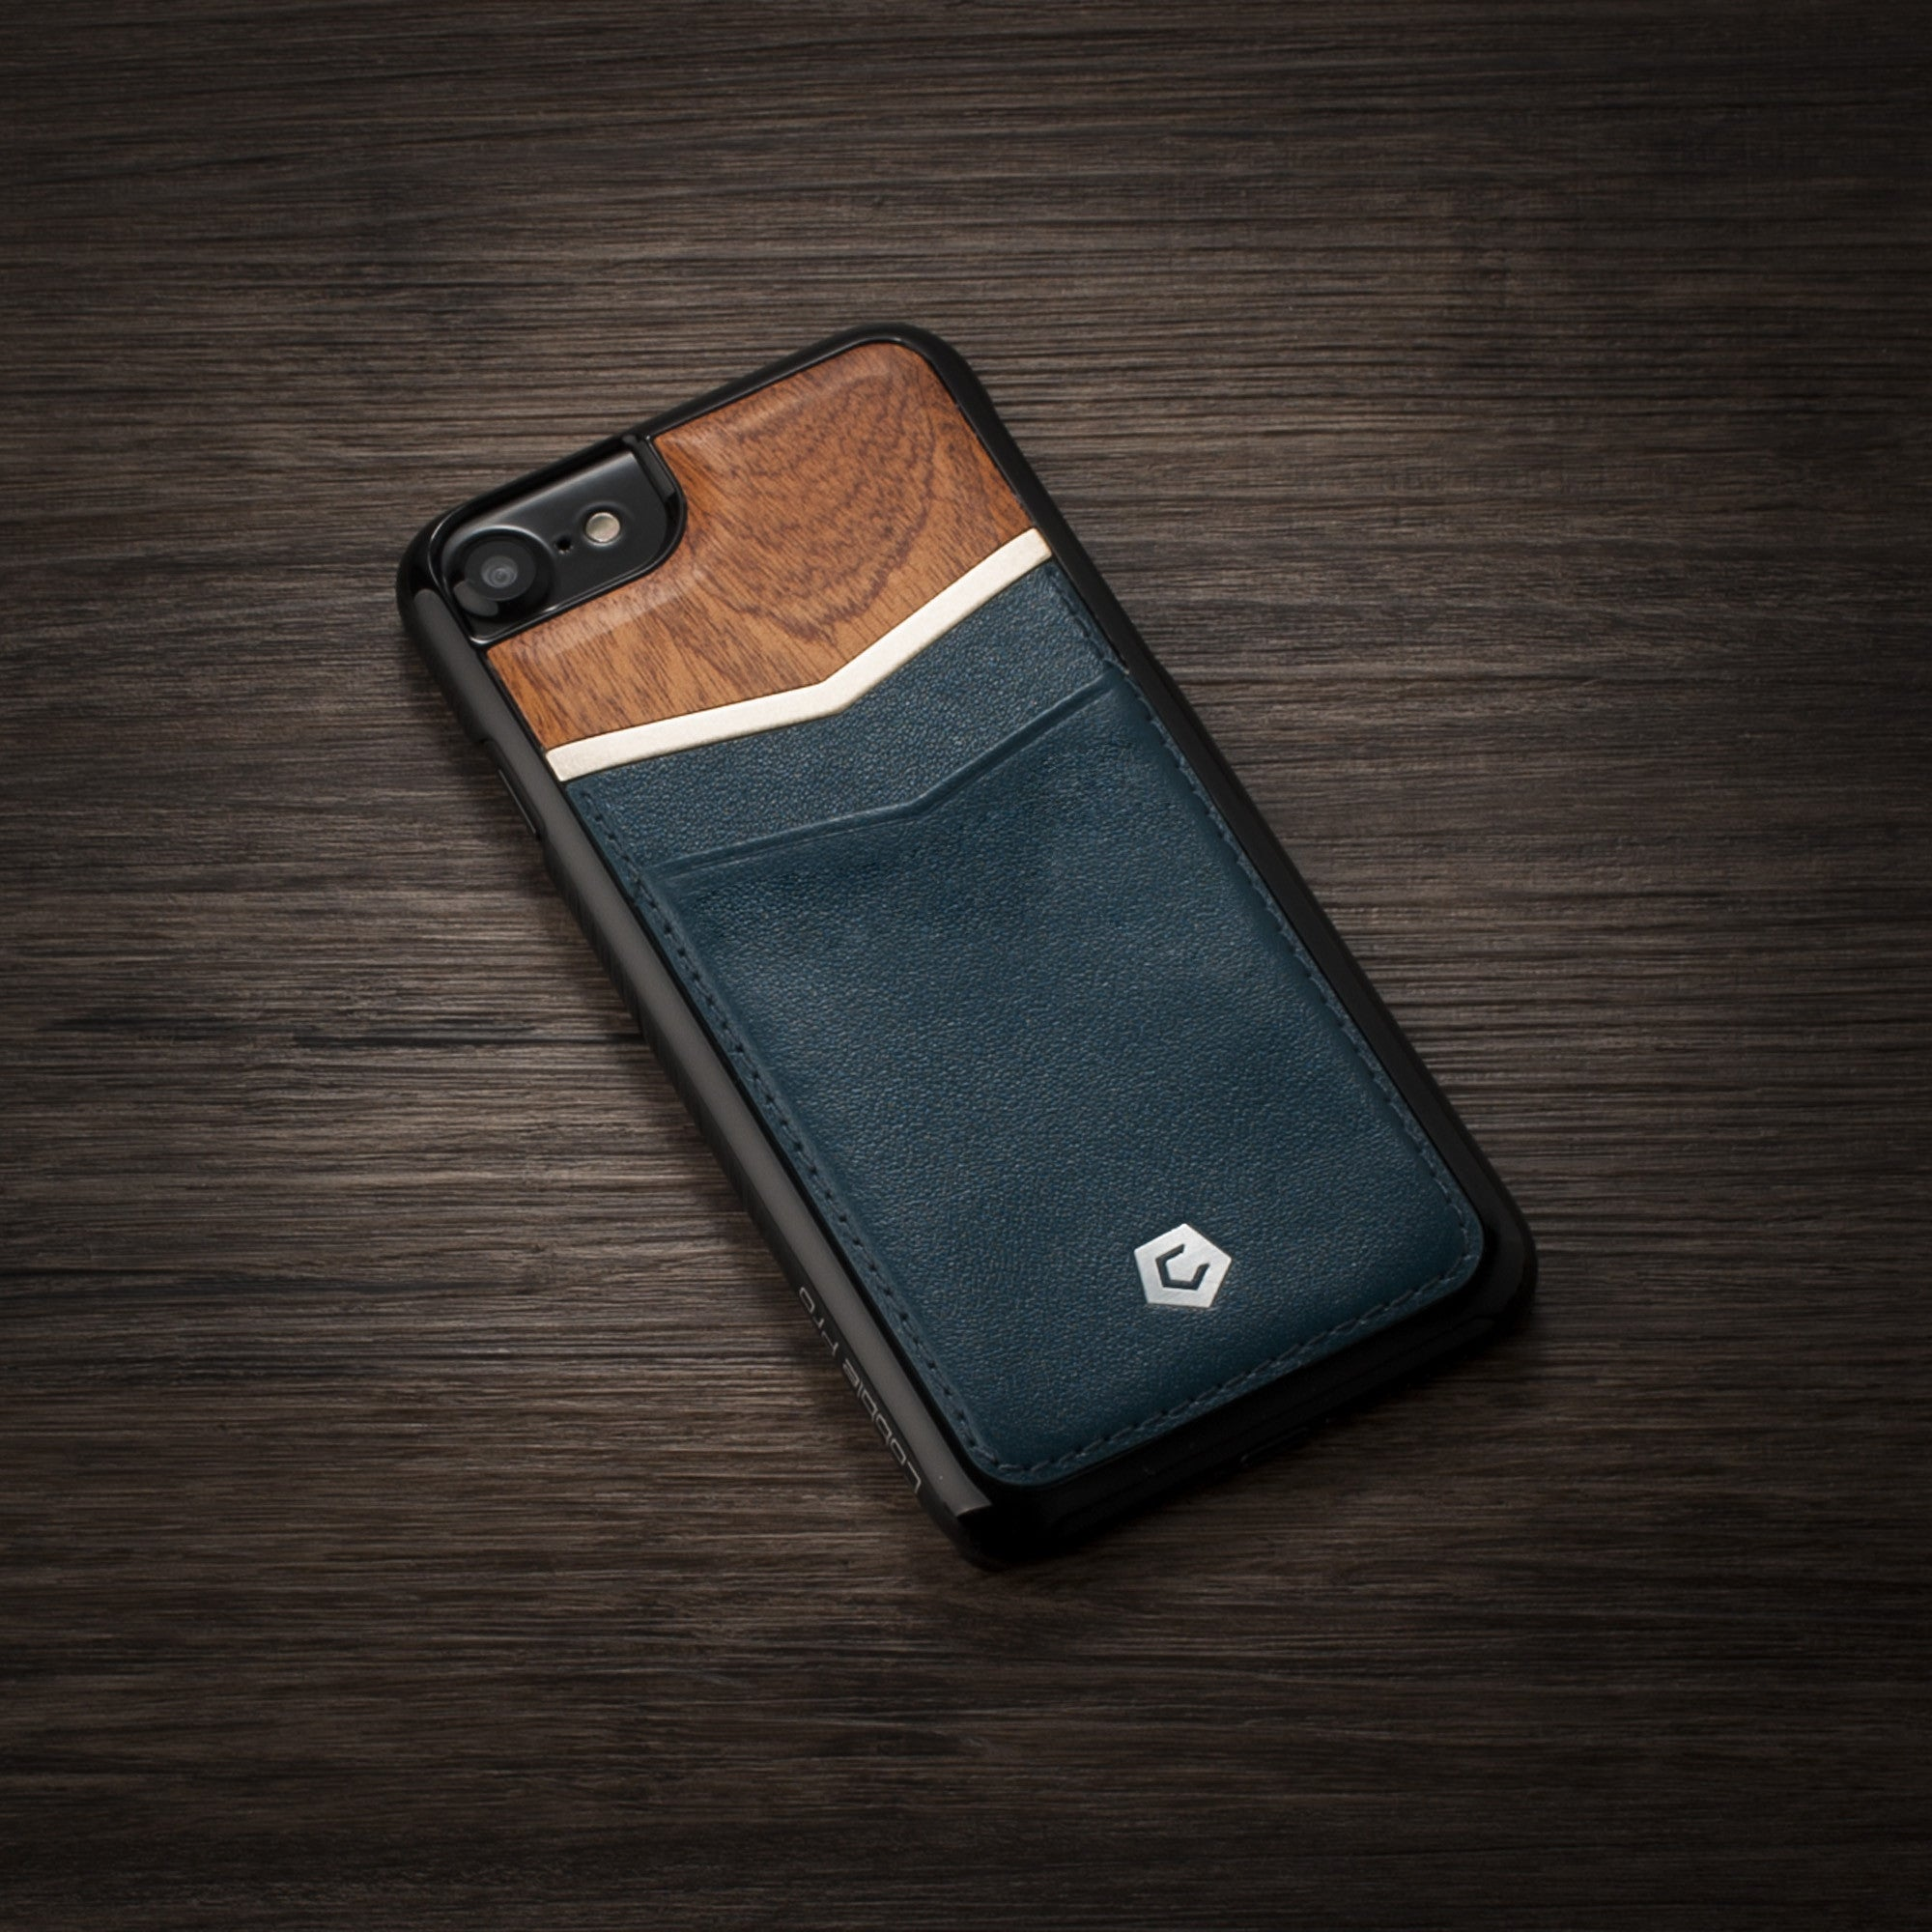 on sale dd6e4 298af Cherry Wood/Dark Blue Genuine Leather Wooden Back Cover with Card Slot for  iPhone 6 / 6s / 7 / 8